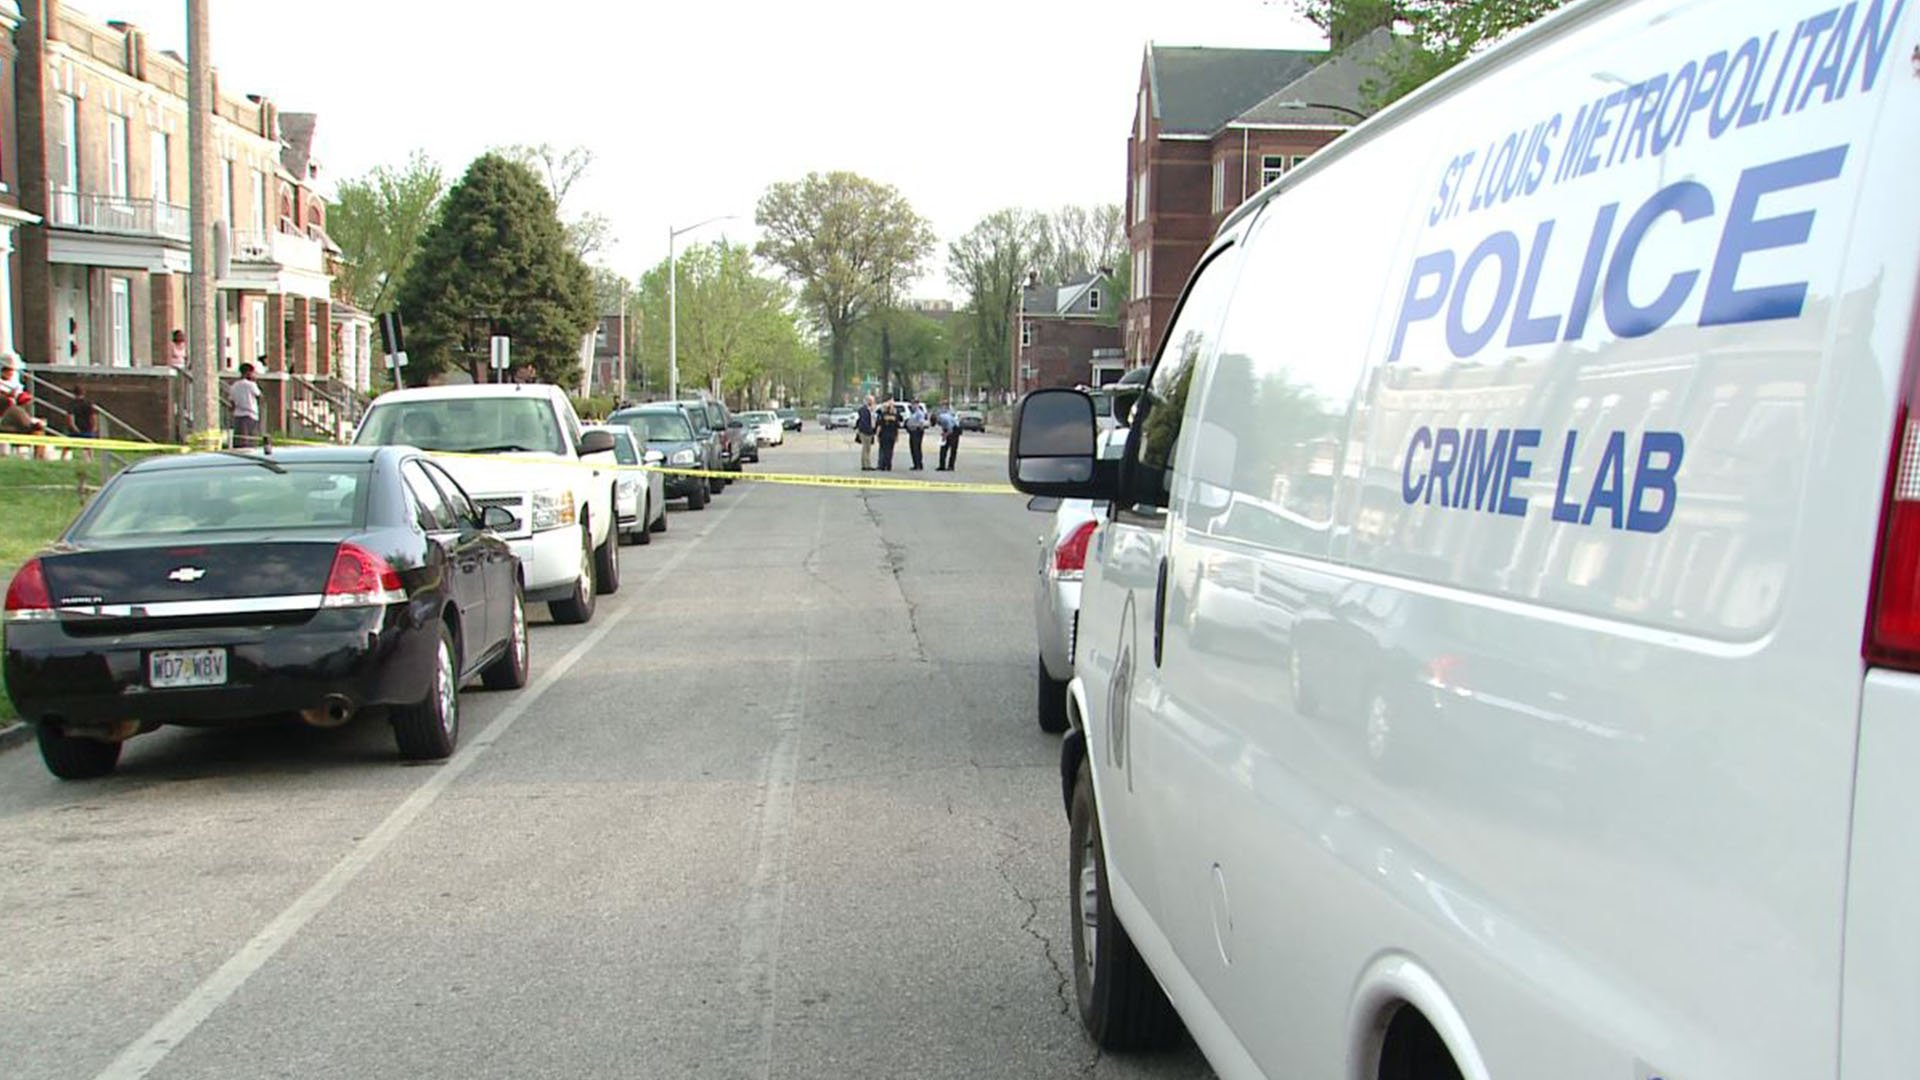 Police are investigating after a 14-year-old boy was shot in North St. Louis (Credit: KMOV)